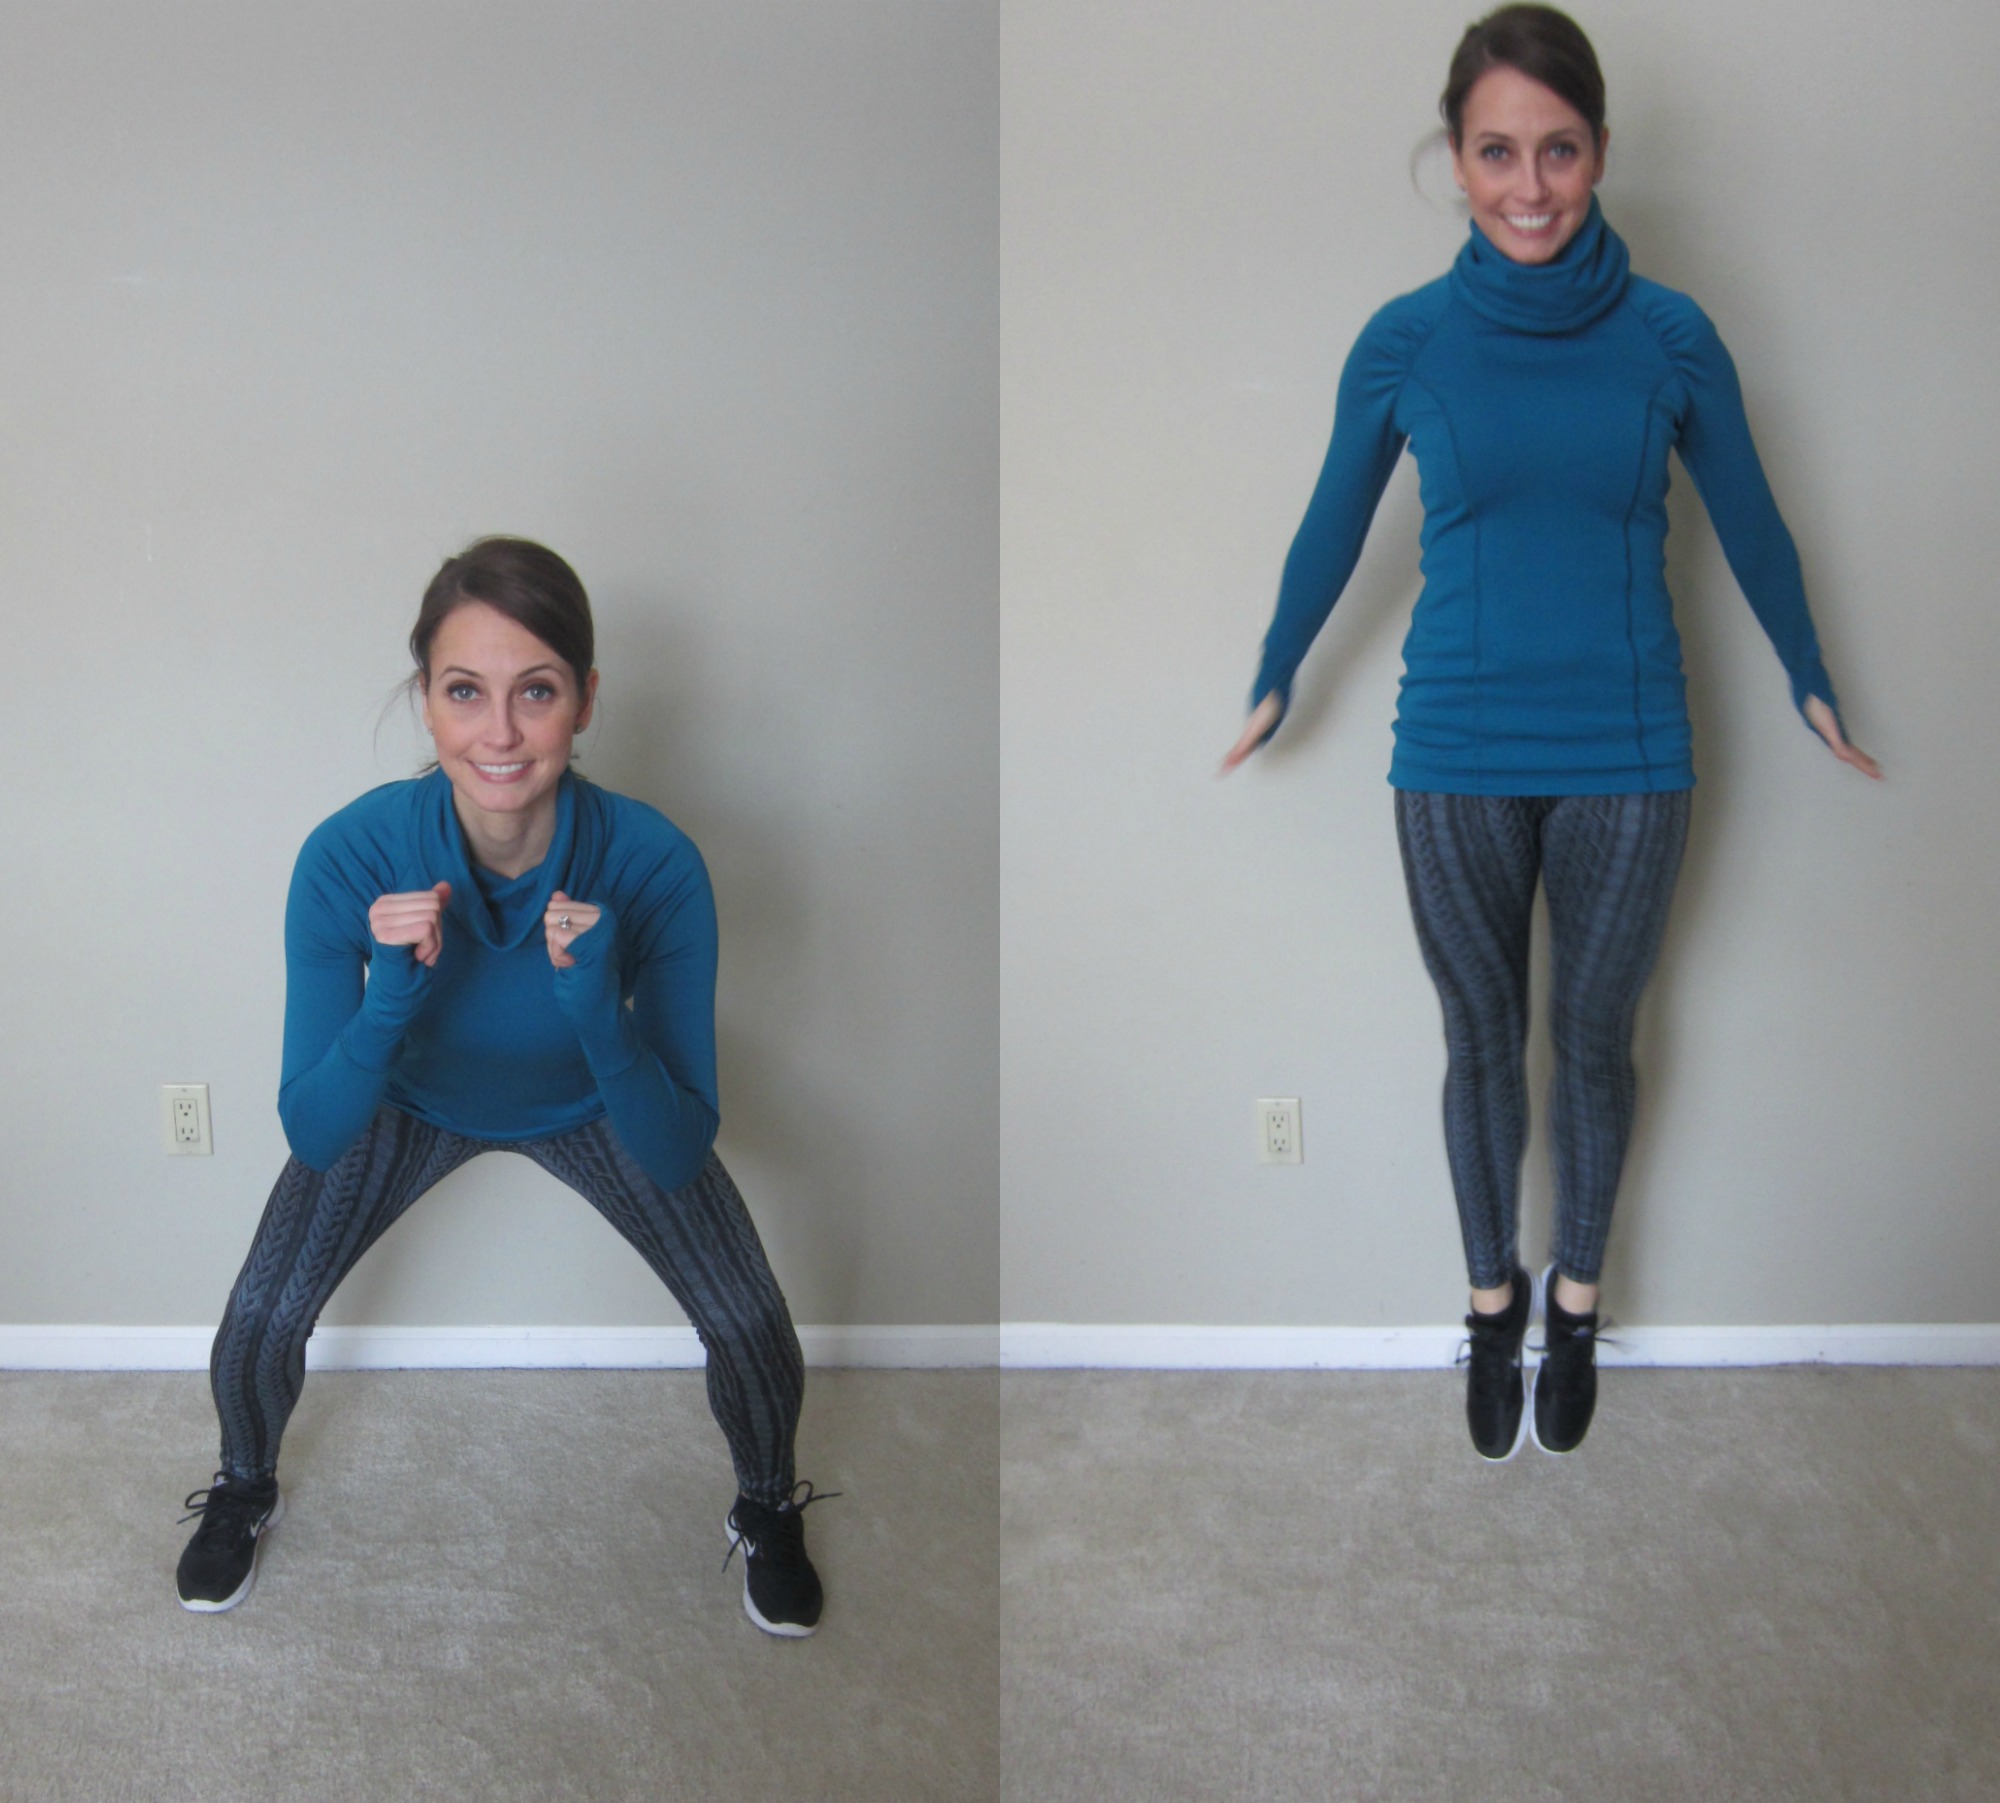 Squat Jump With Heel Clicks Exercise